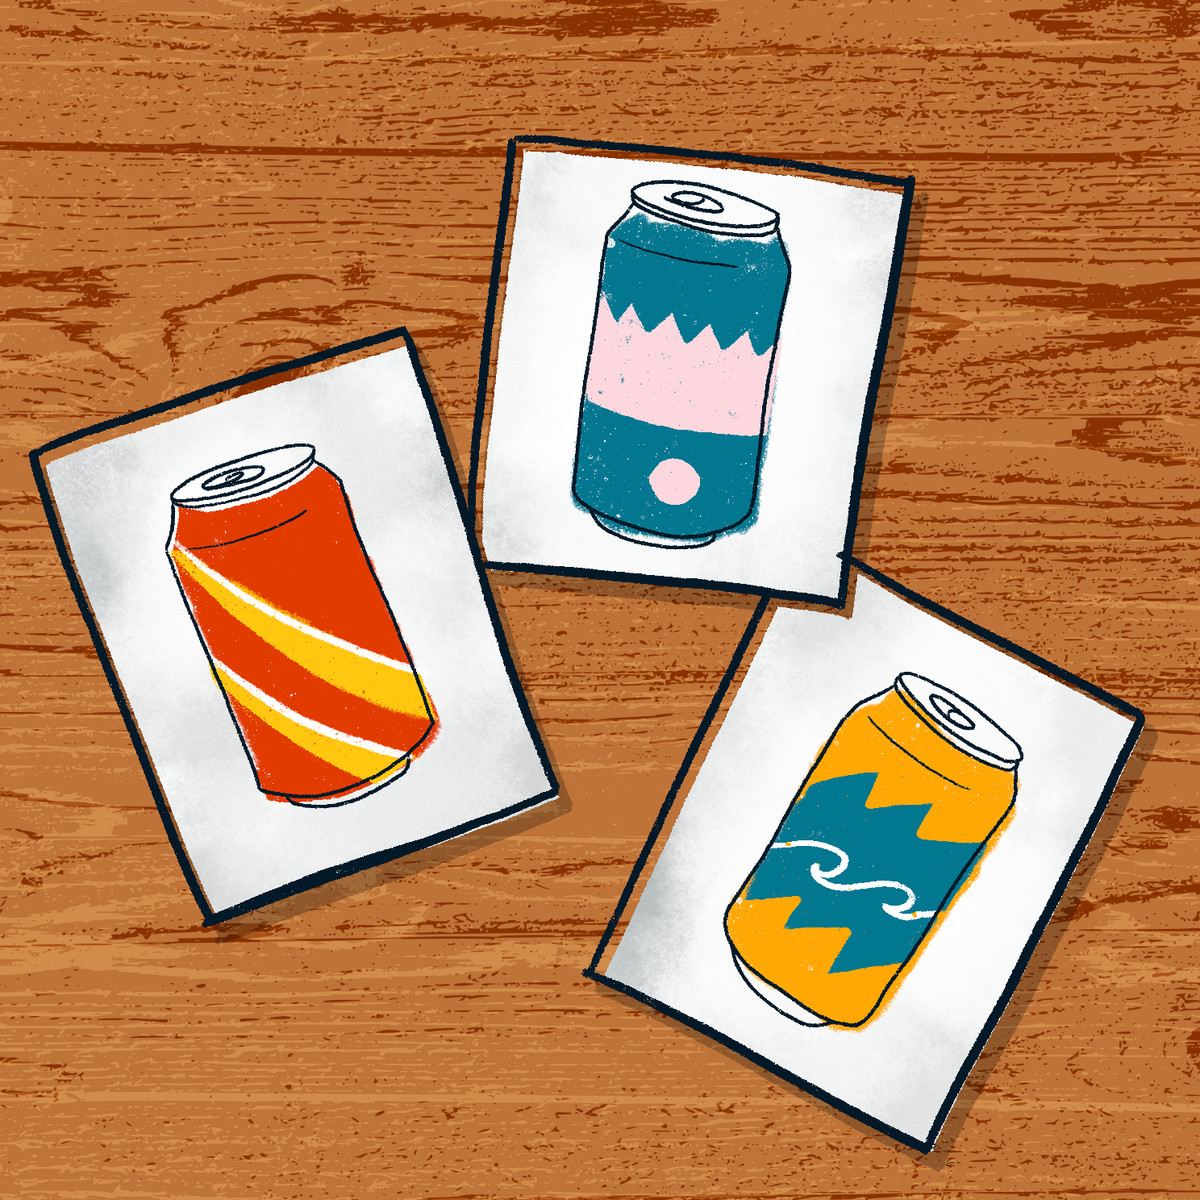 Cards with different soda cans designs laid out on a table